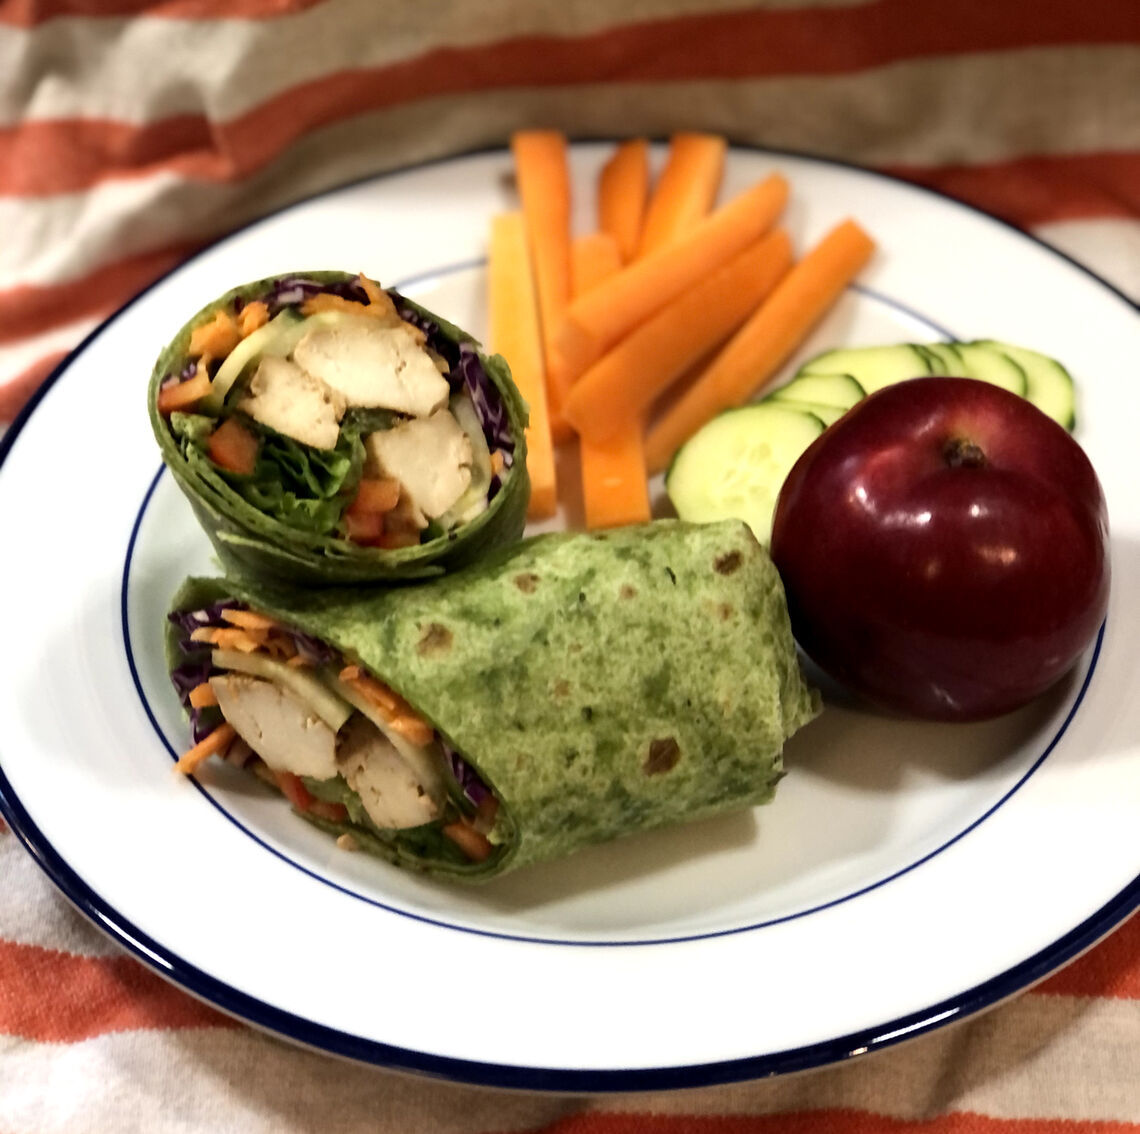 Baked soy ginger tofu served in a wrap with a fresh side of cut veggies and an apple.